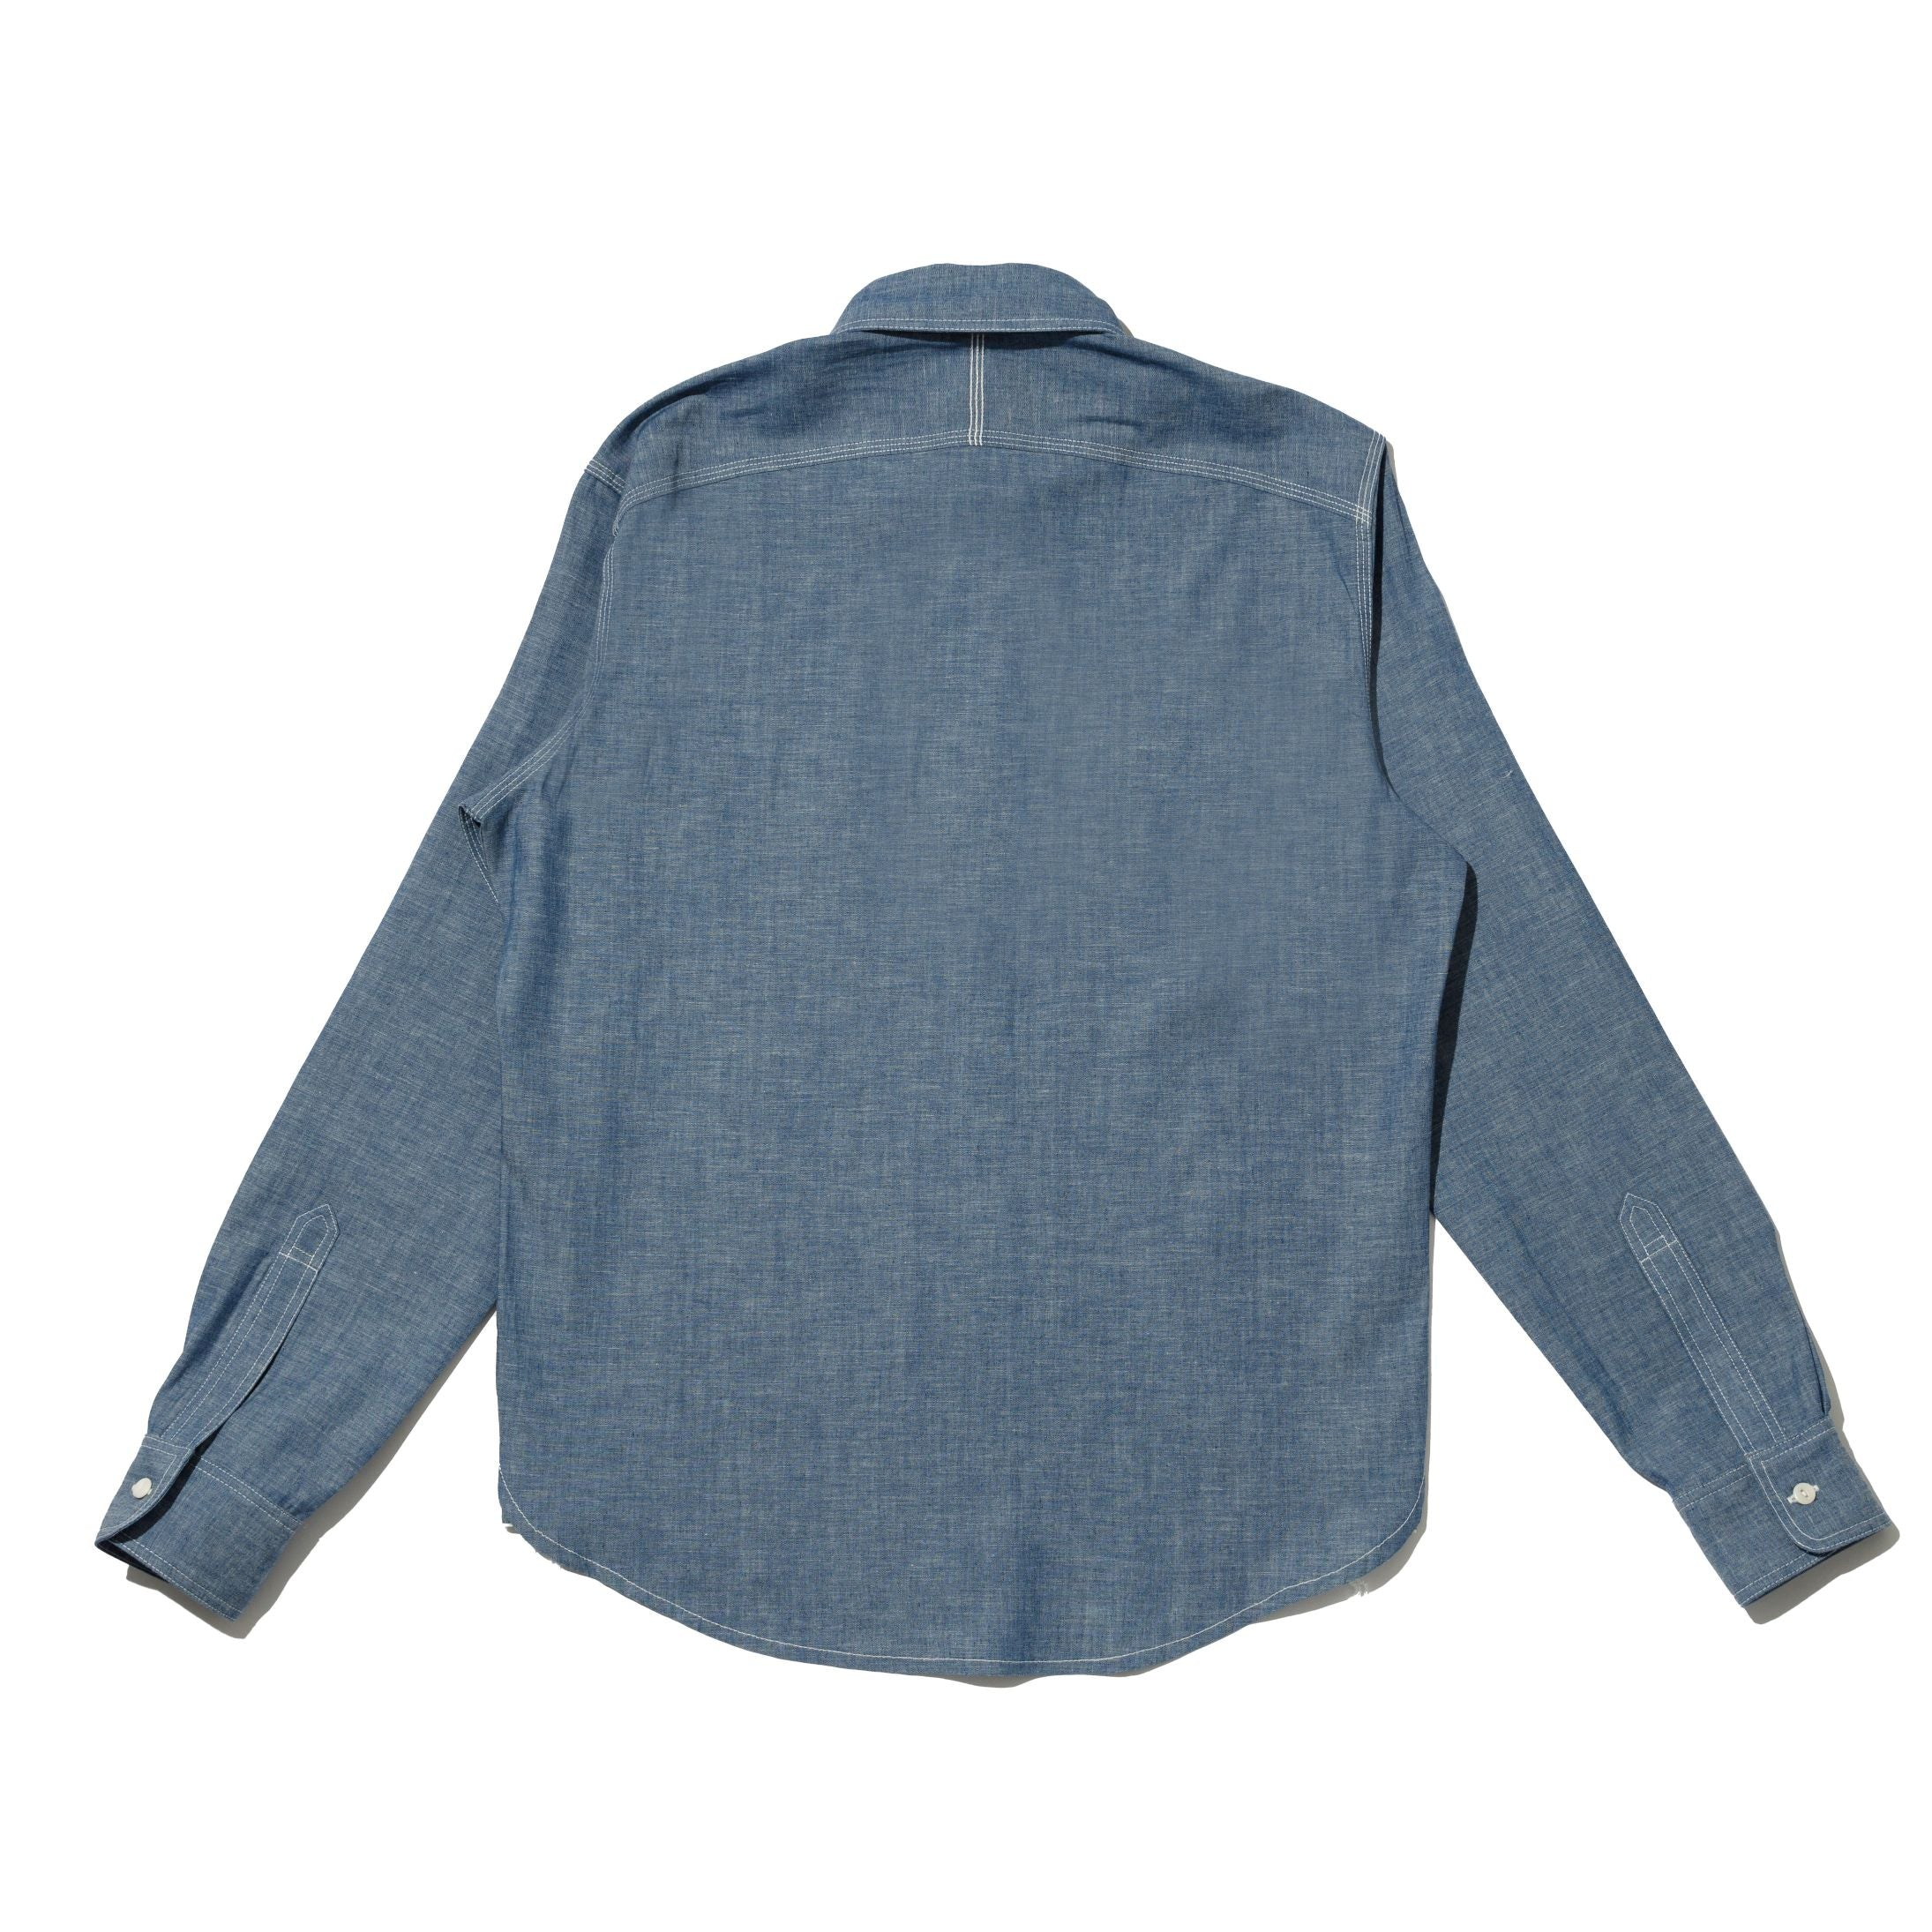 Dawson Denim x Triplstitched Workwear Shirt - 5oz Chambray